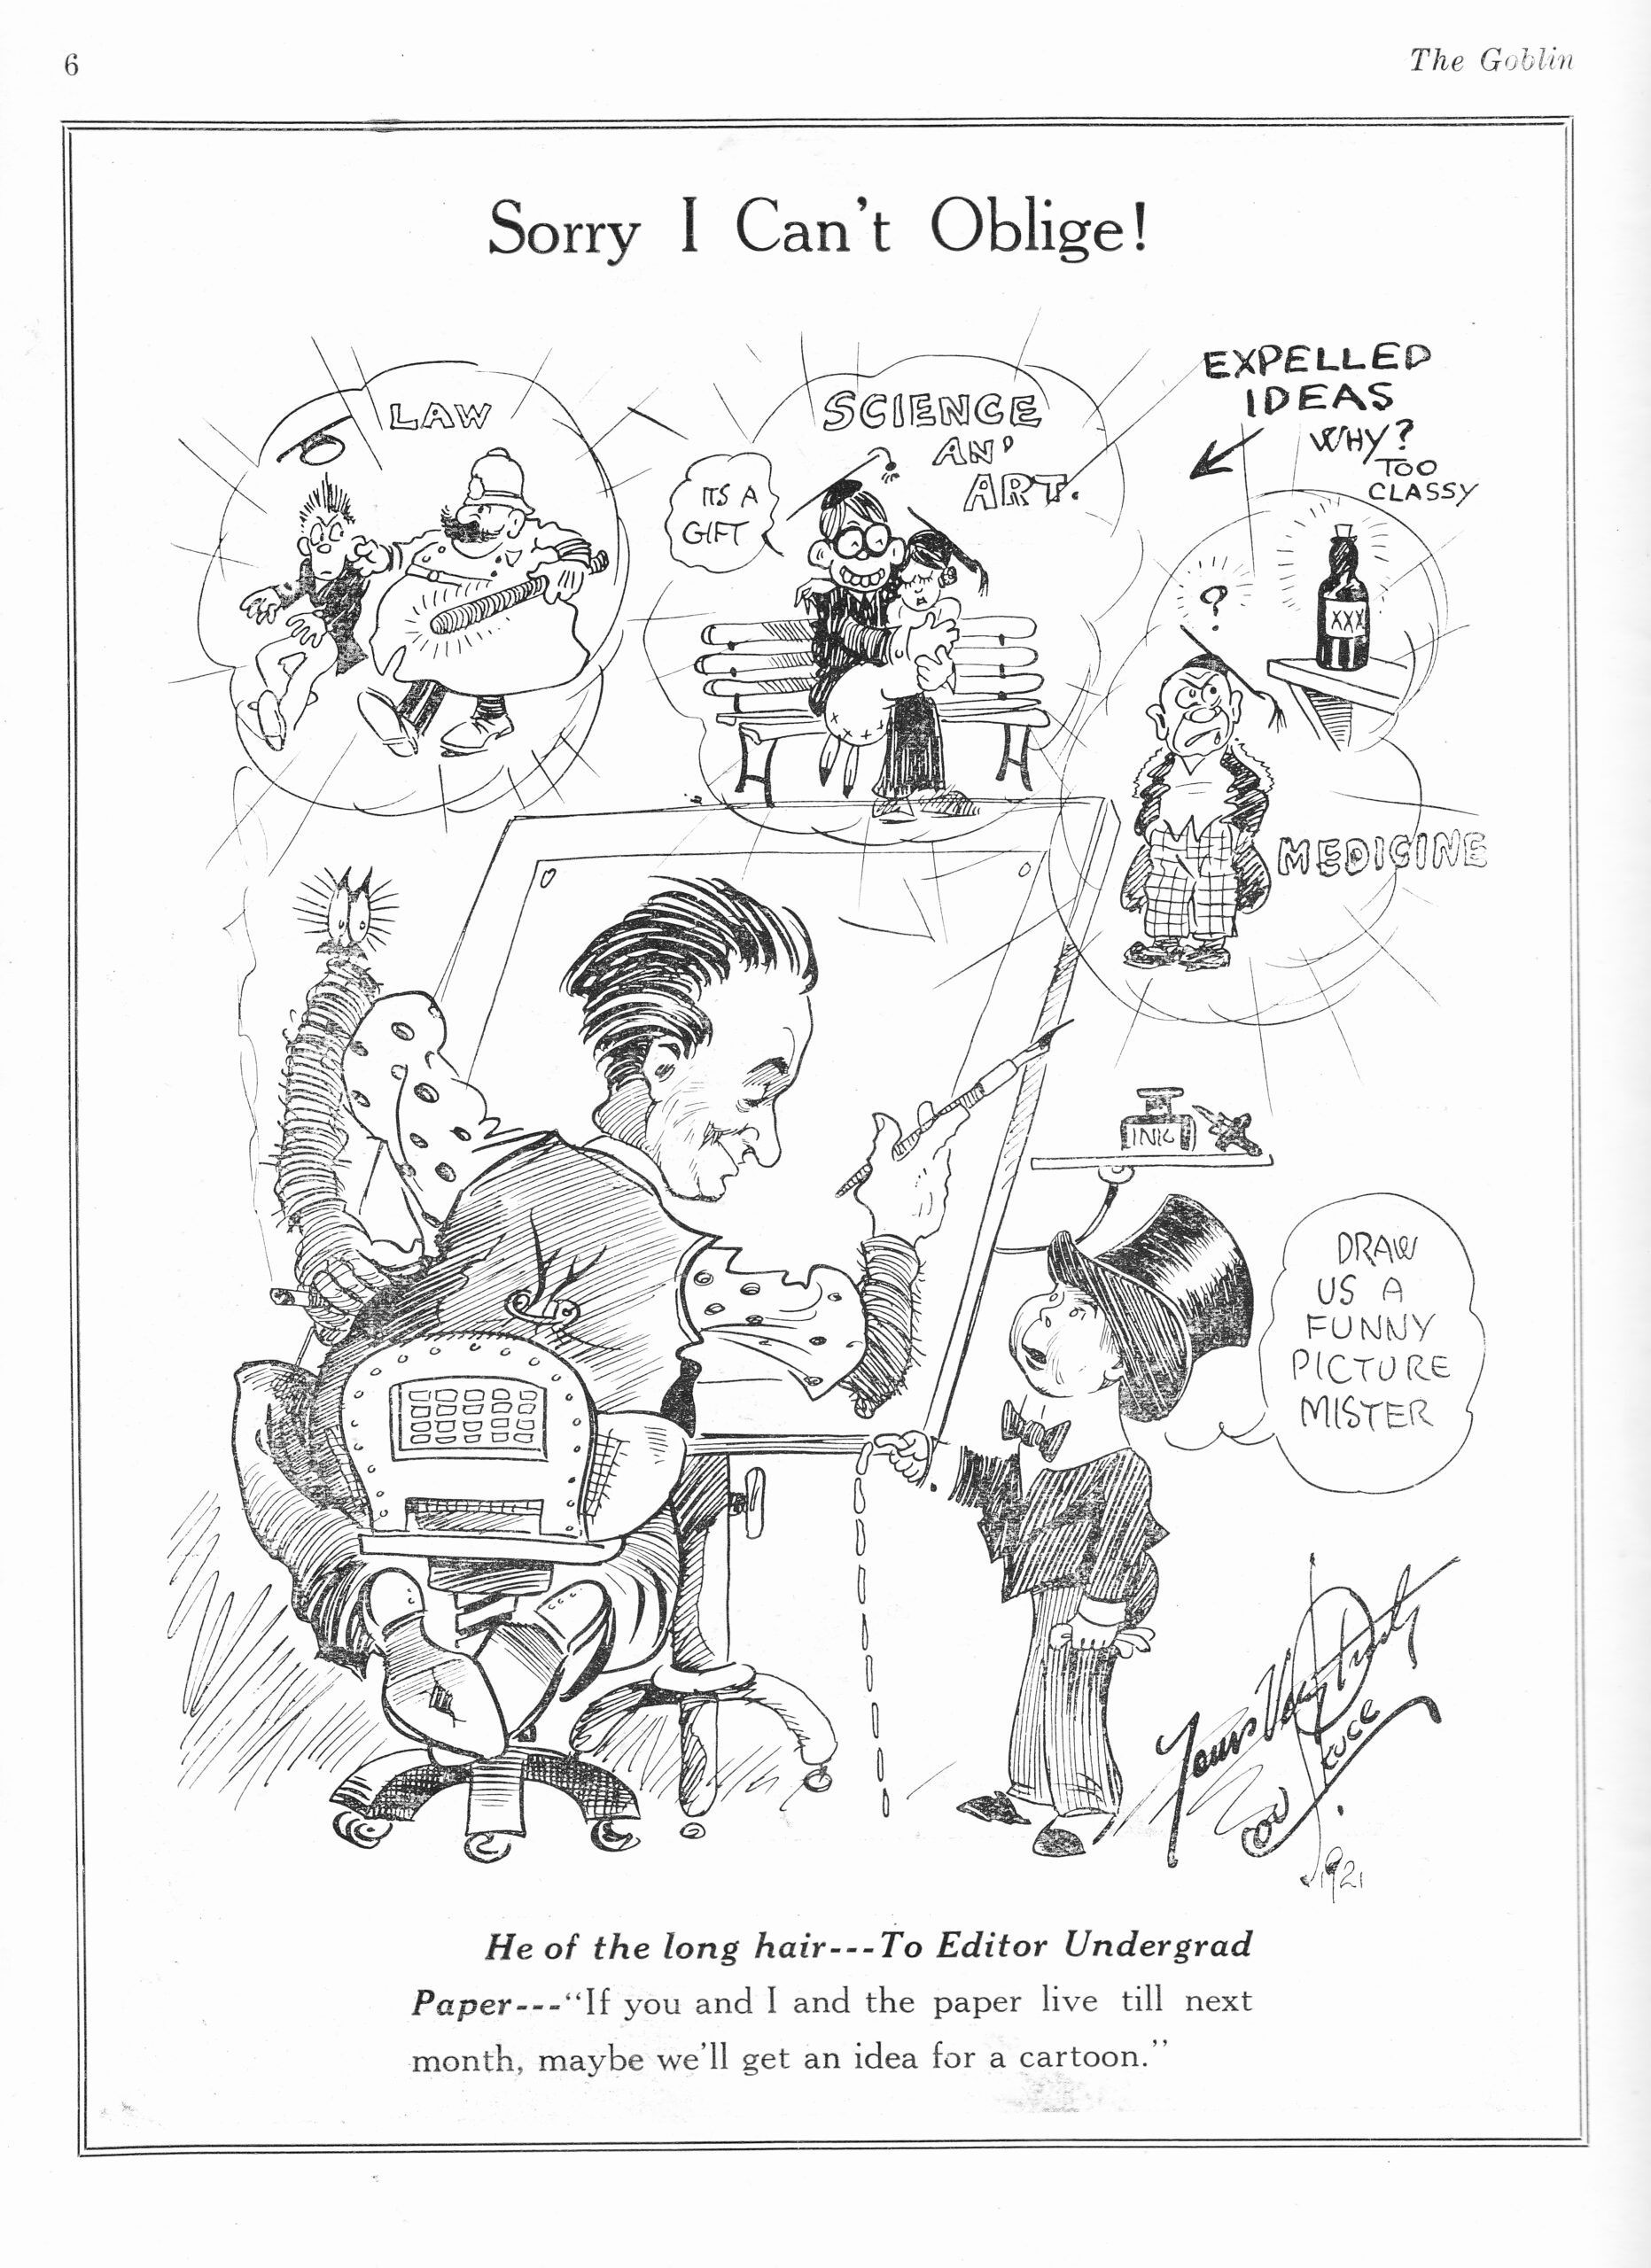 C:\Users\Robert\Documents\CANADIAN CARTOONING ILLUSTRATION and ANIMATION\IMAGE BY CARTOONIST OR ILLUS. S\SKUCE Lou, Self Portrait, Goblin 1-1, Feb. 1921,6.jpg